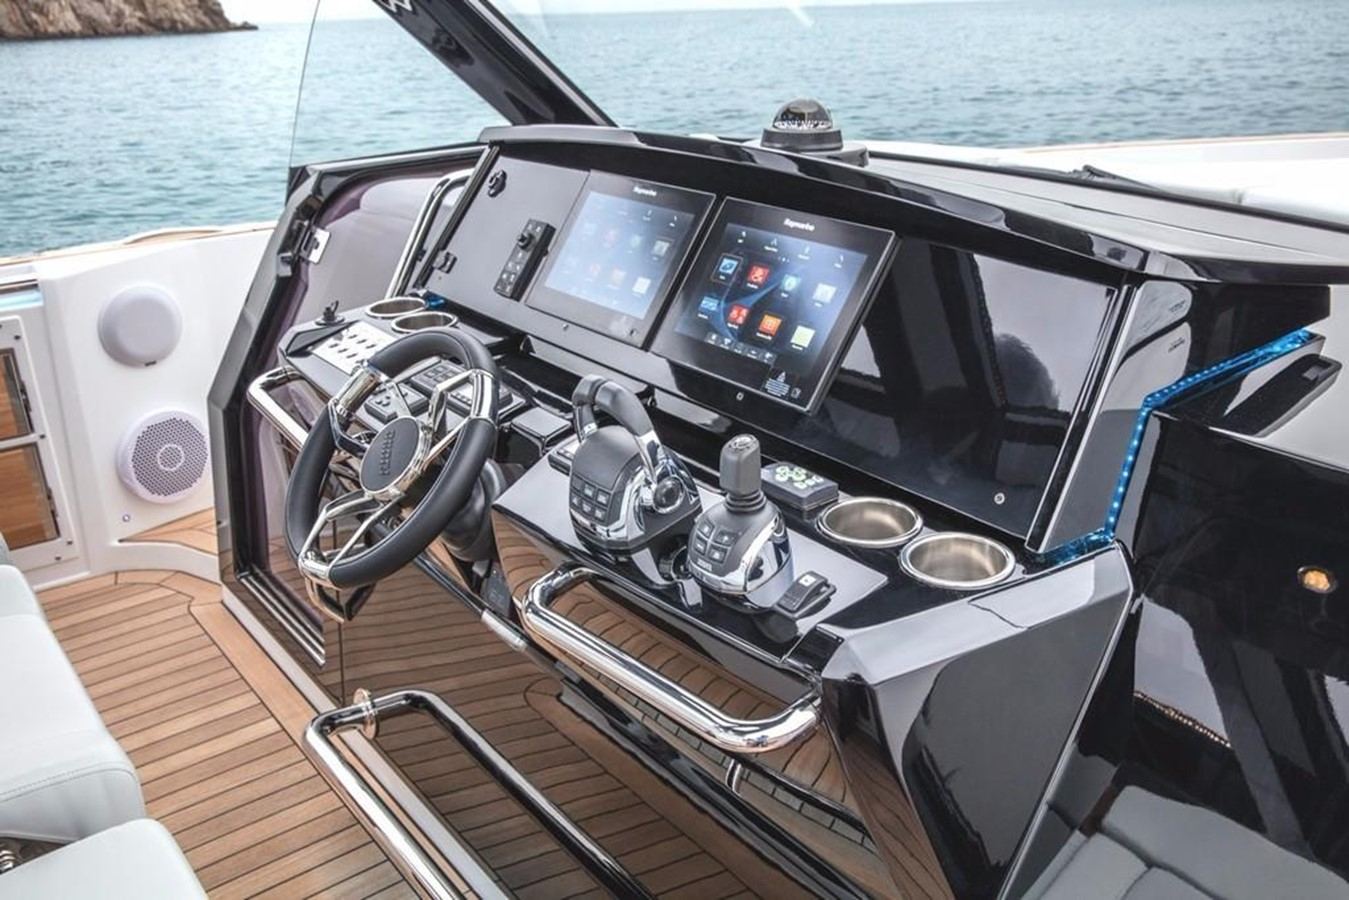 2019 FJORD YACHTS 44 Open Motor Yacht 2608329